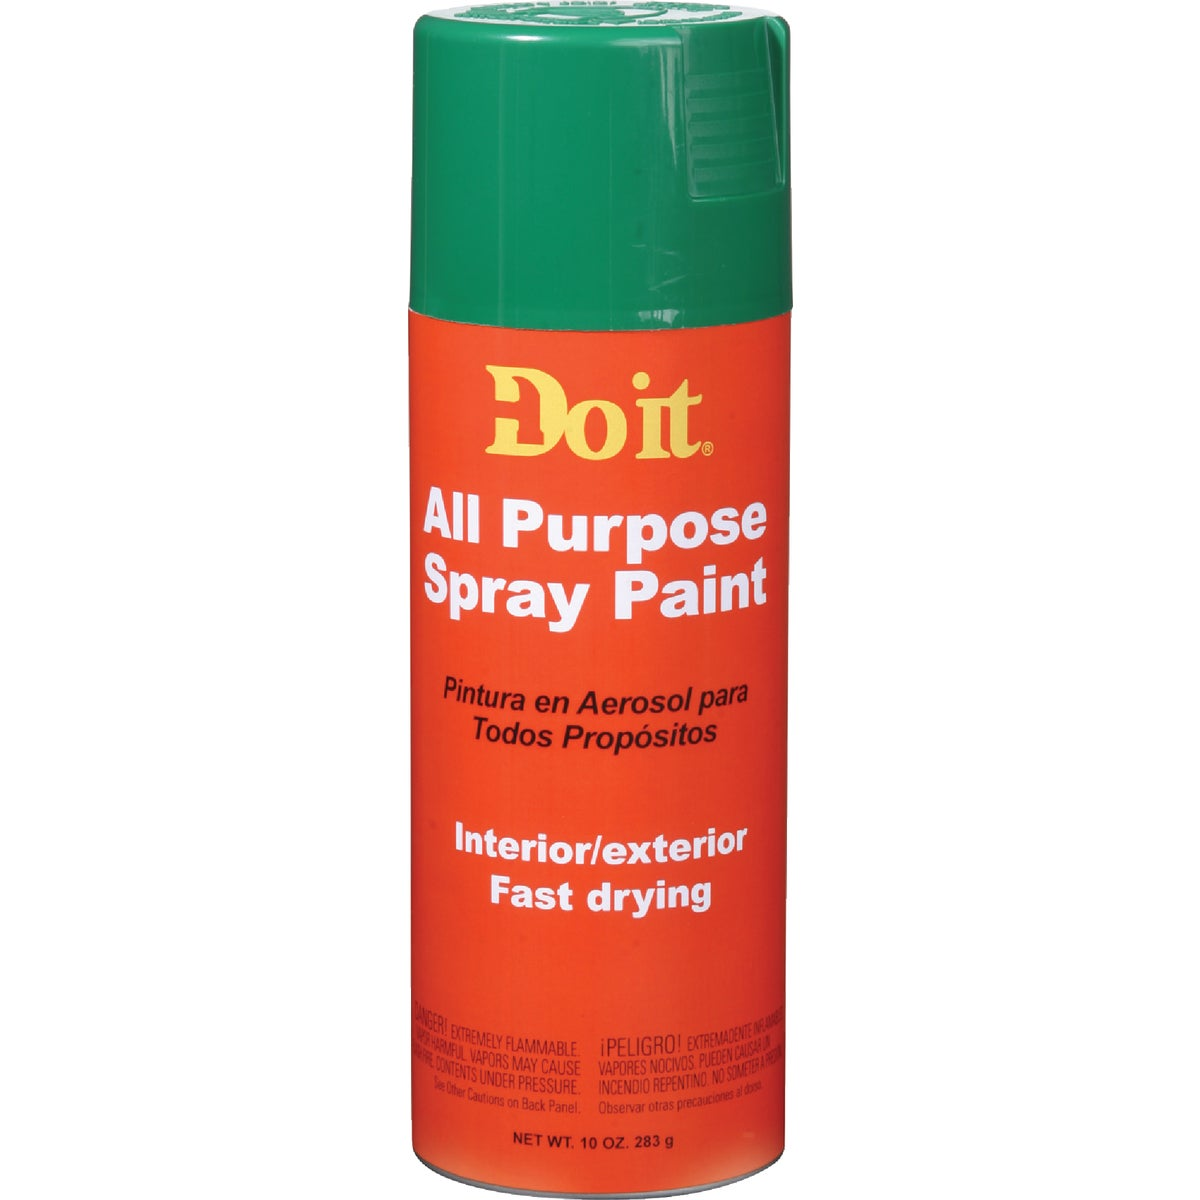 GREEN A/P SPRAY PAINT - 9005 by Rustoleum